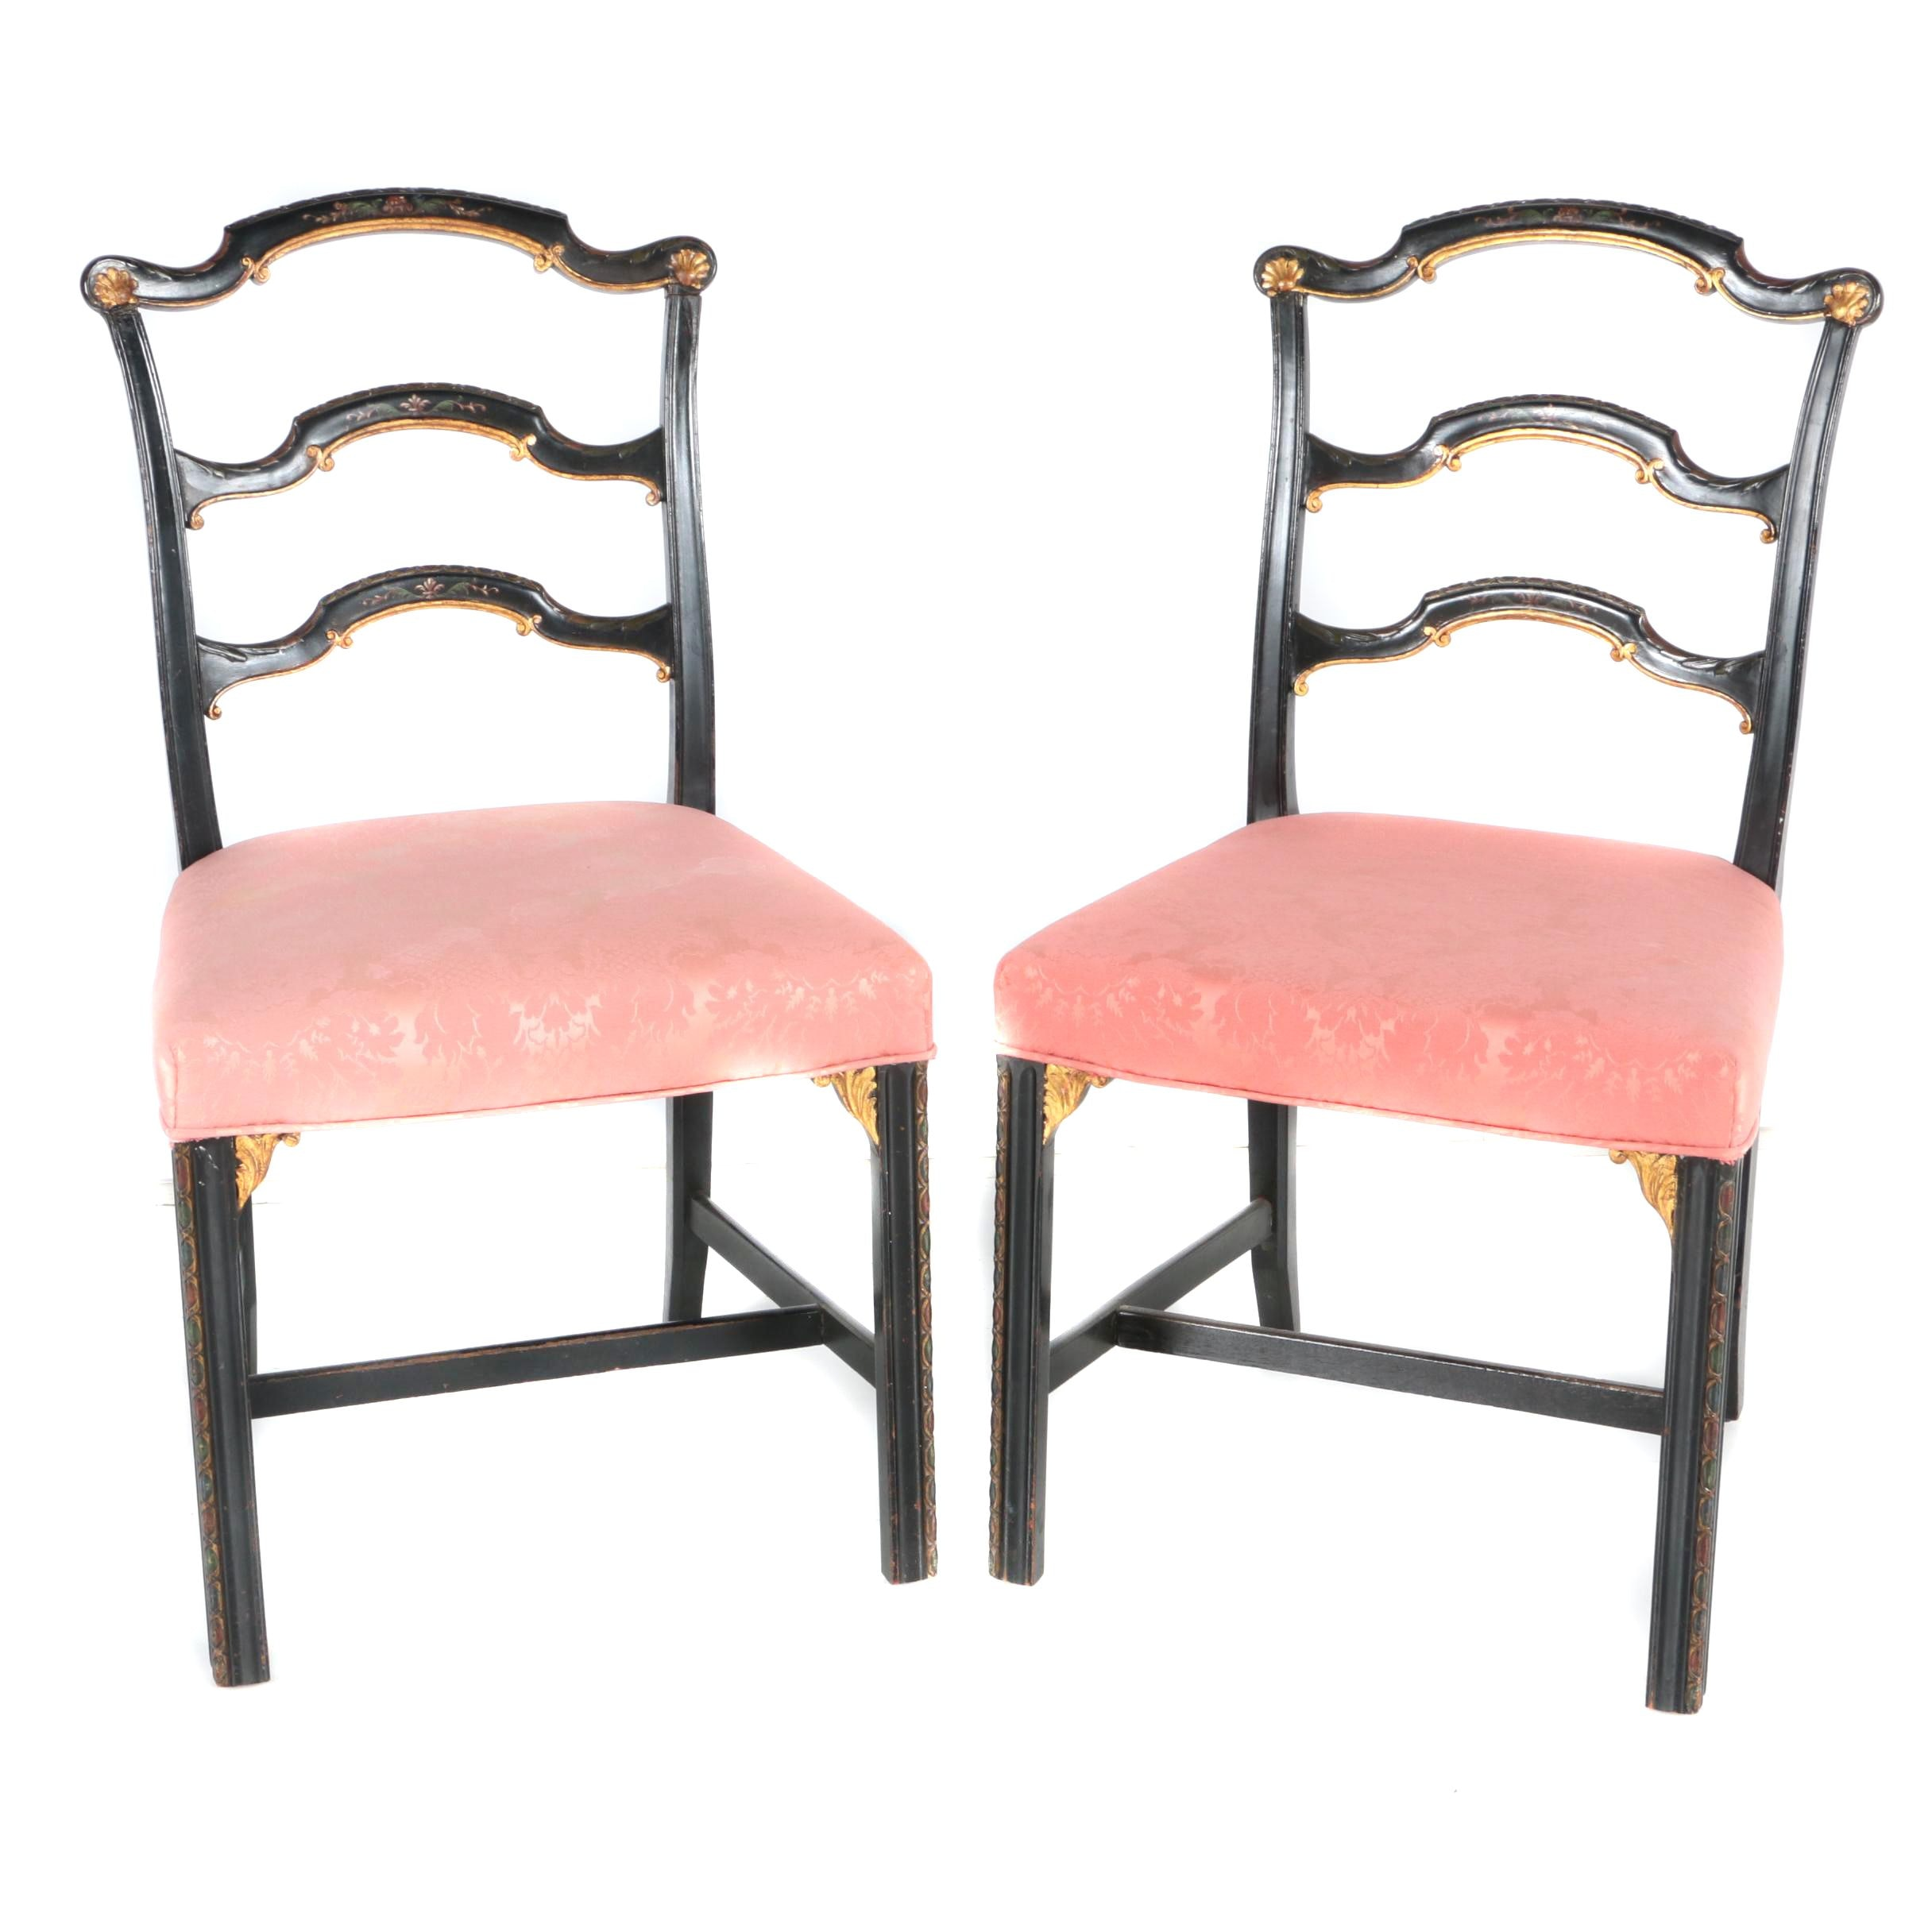 Vintage Neoclassical Style Dining Chairs